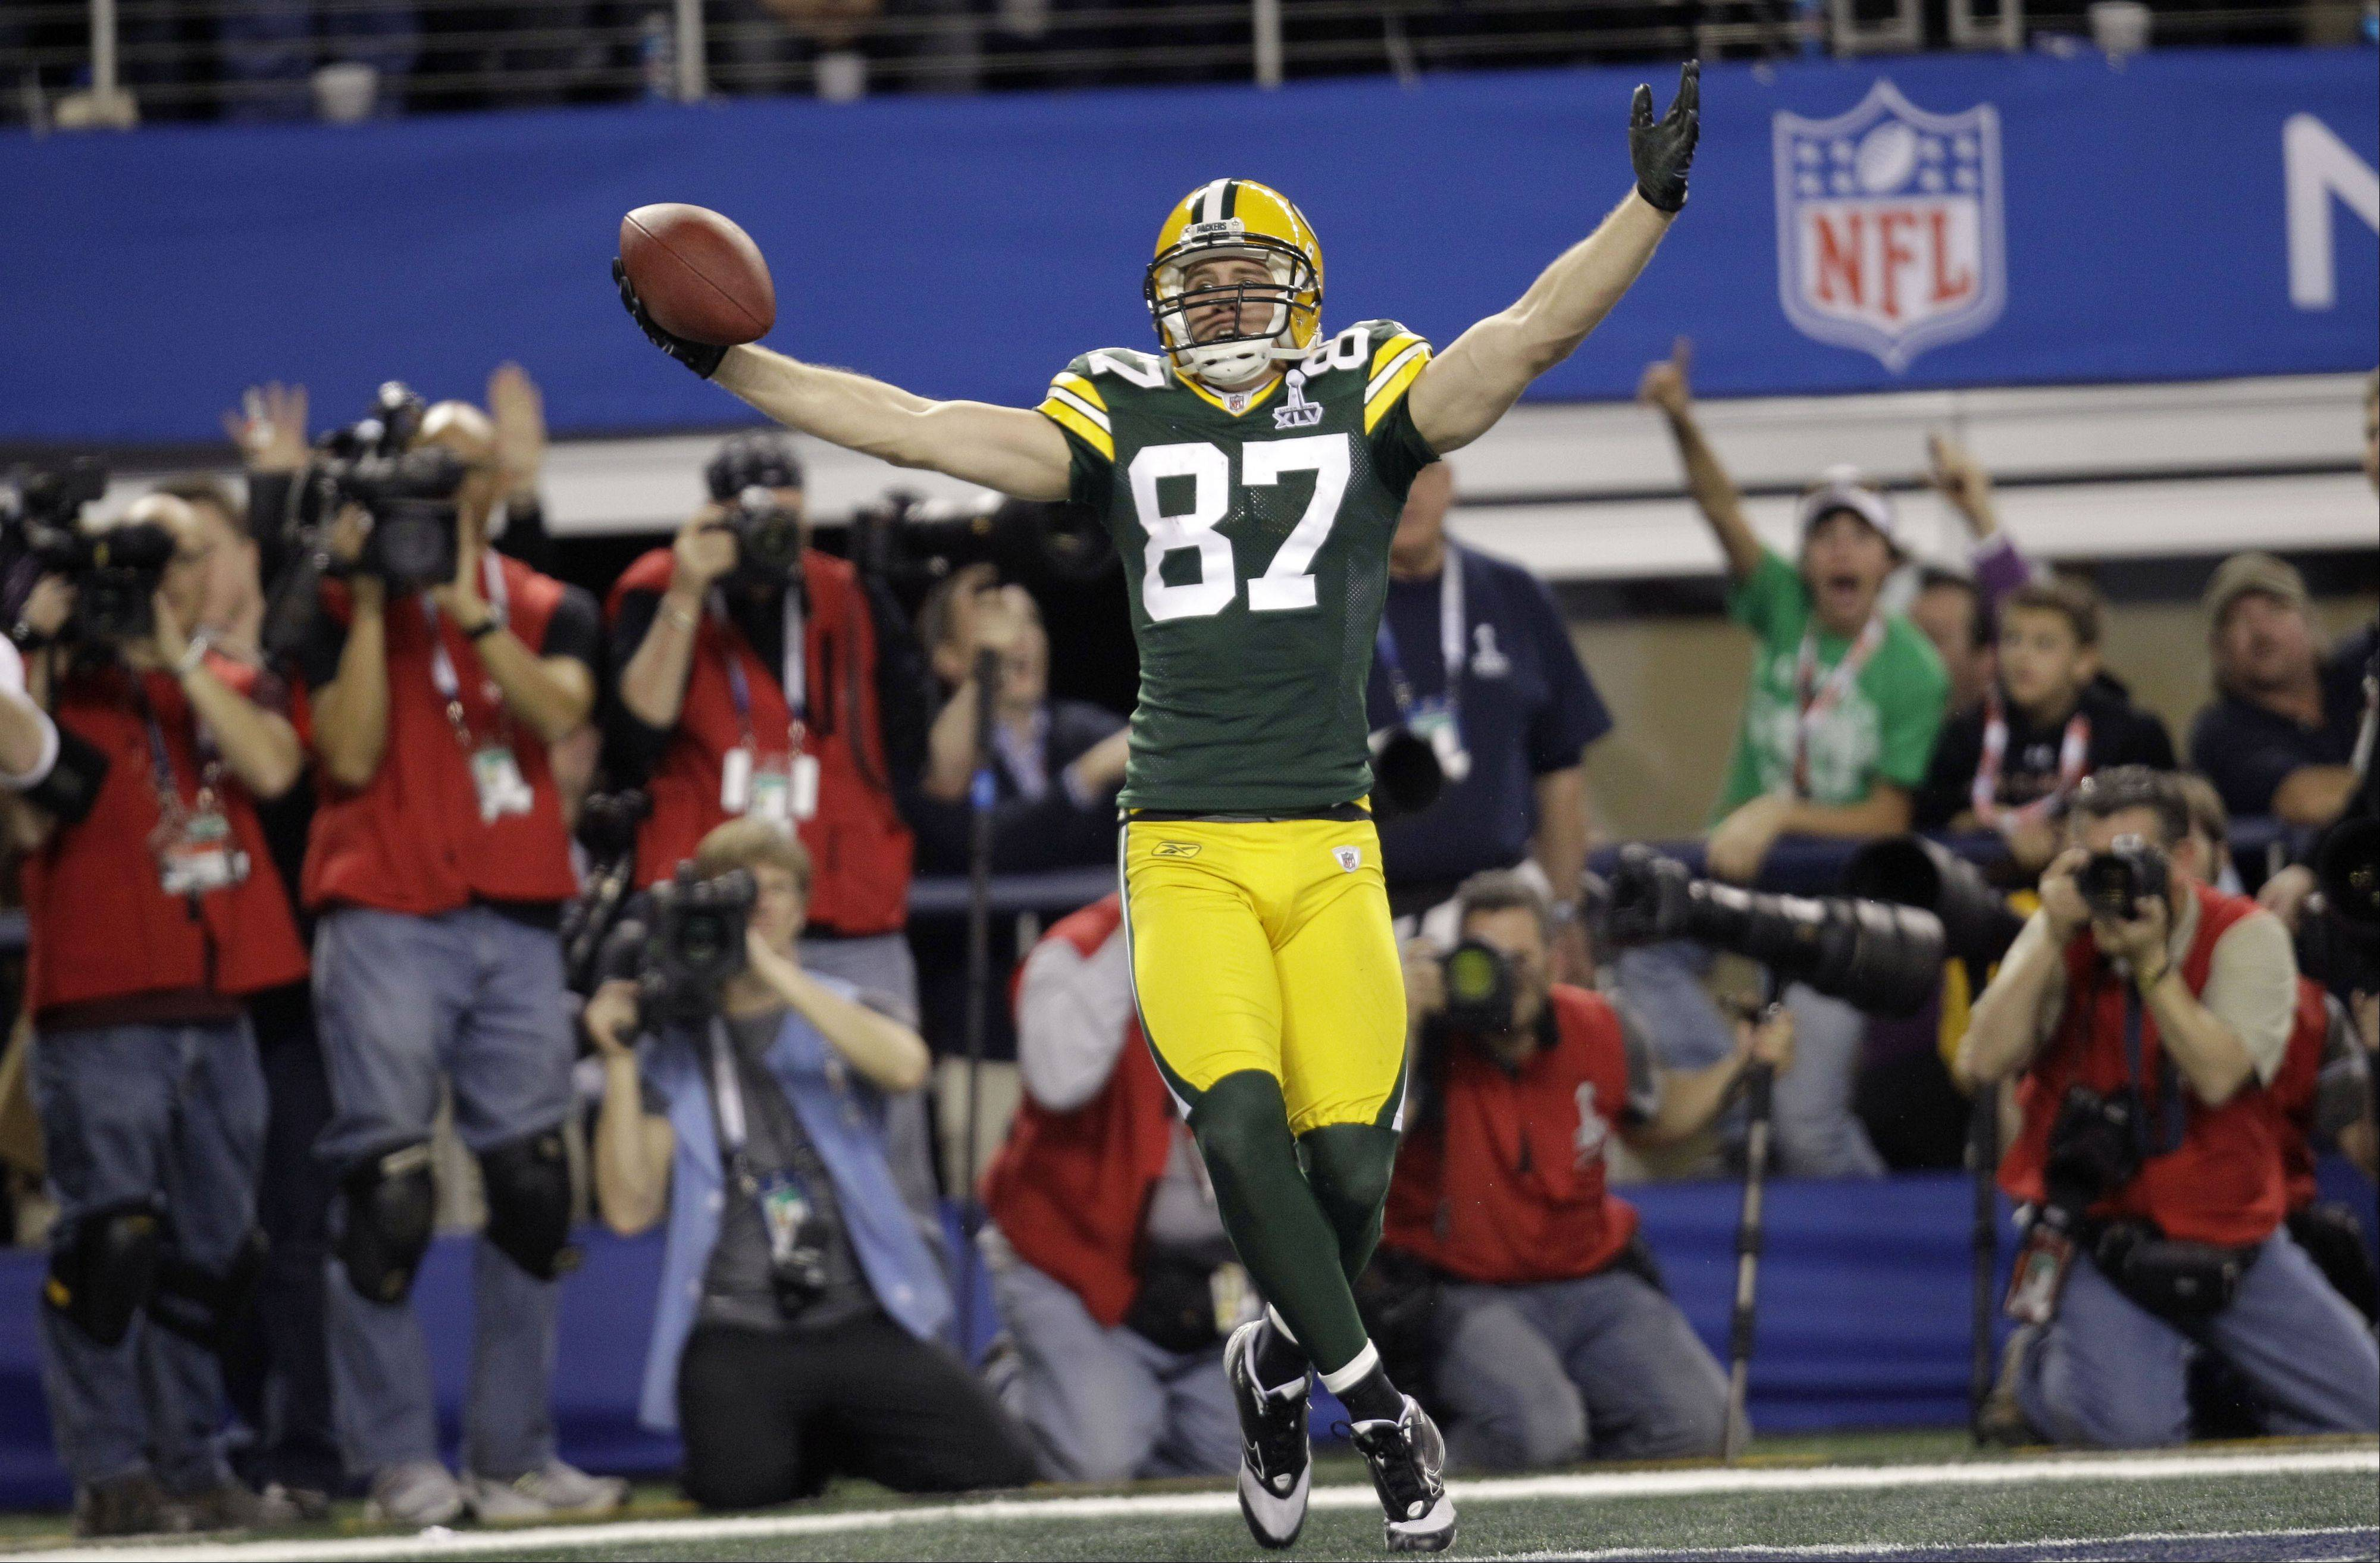 Jordy Nelson exploded onto the scene in 2011 and John Dietz believes it will continue into 2012.